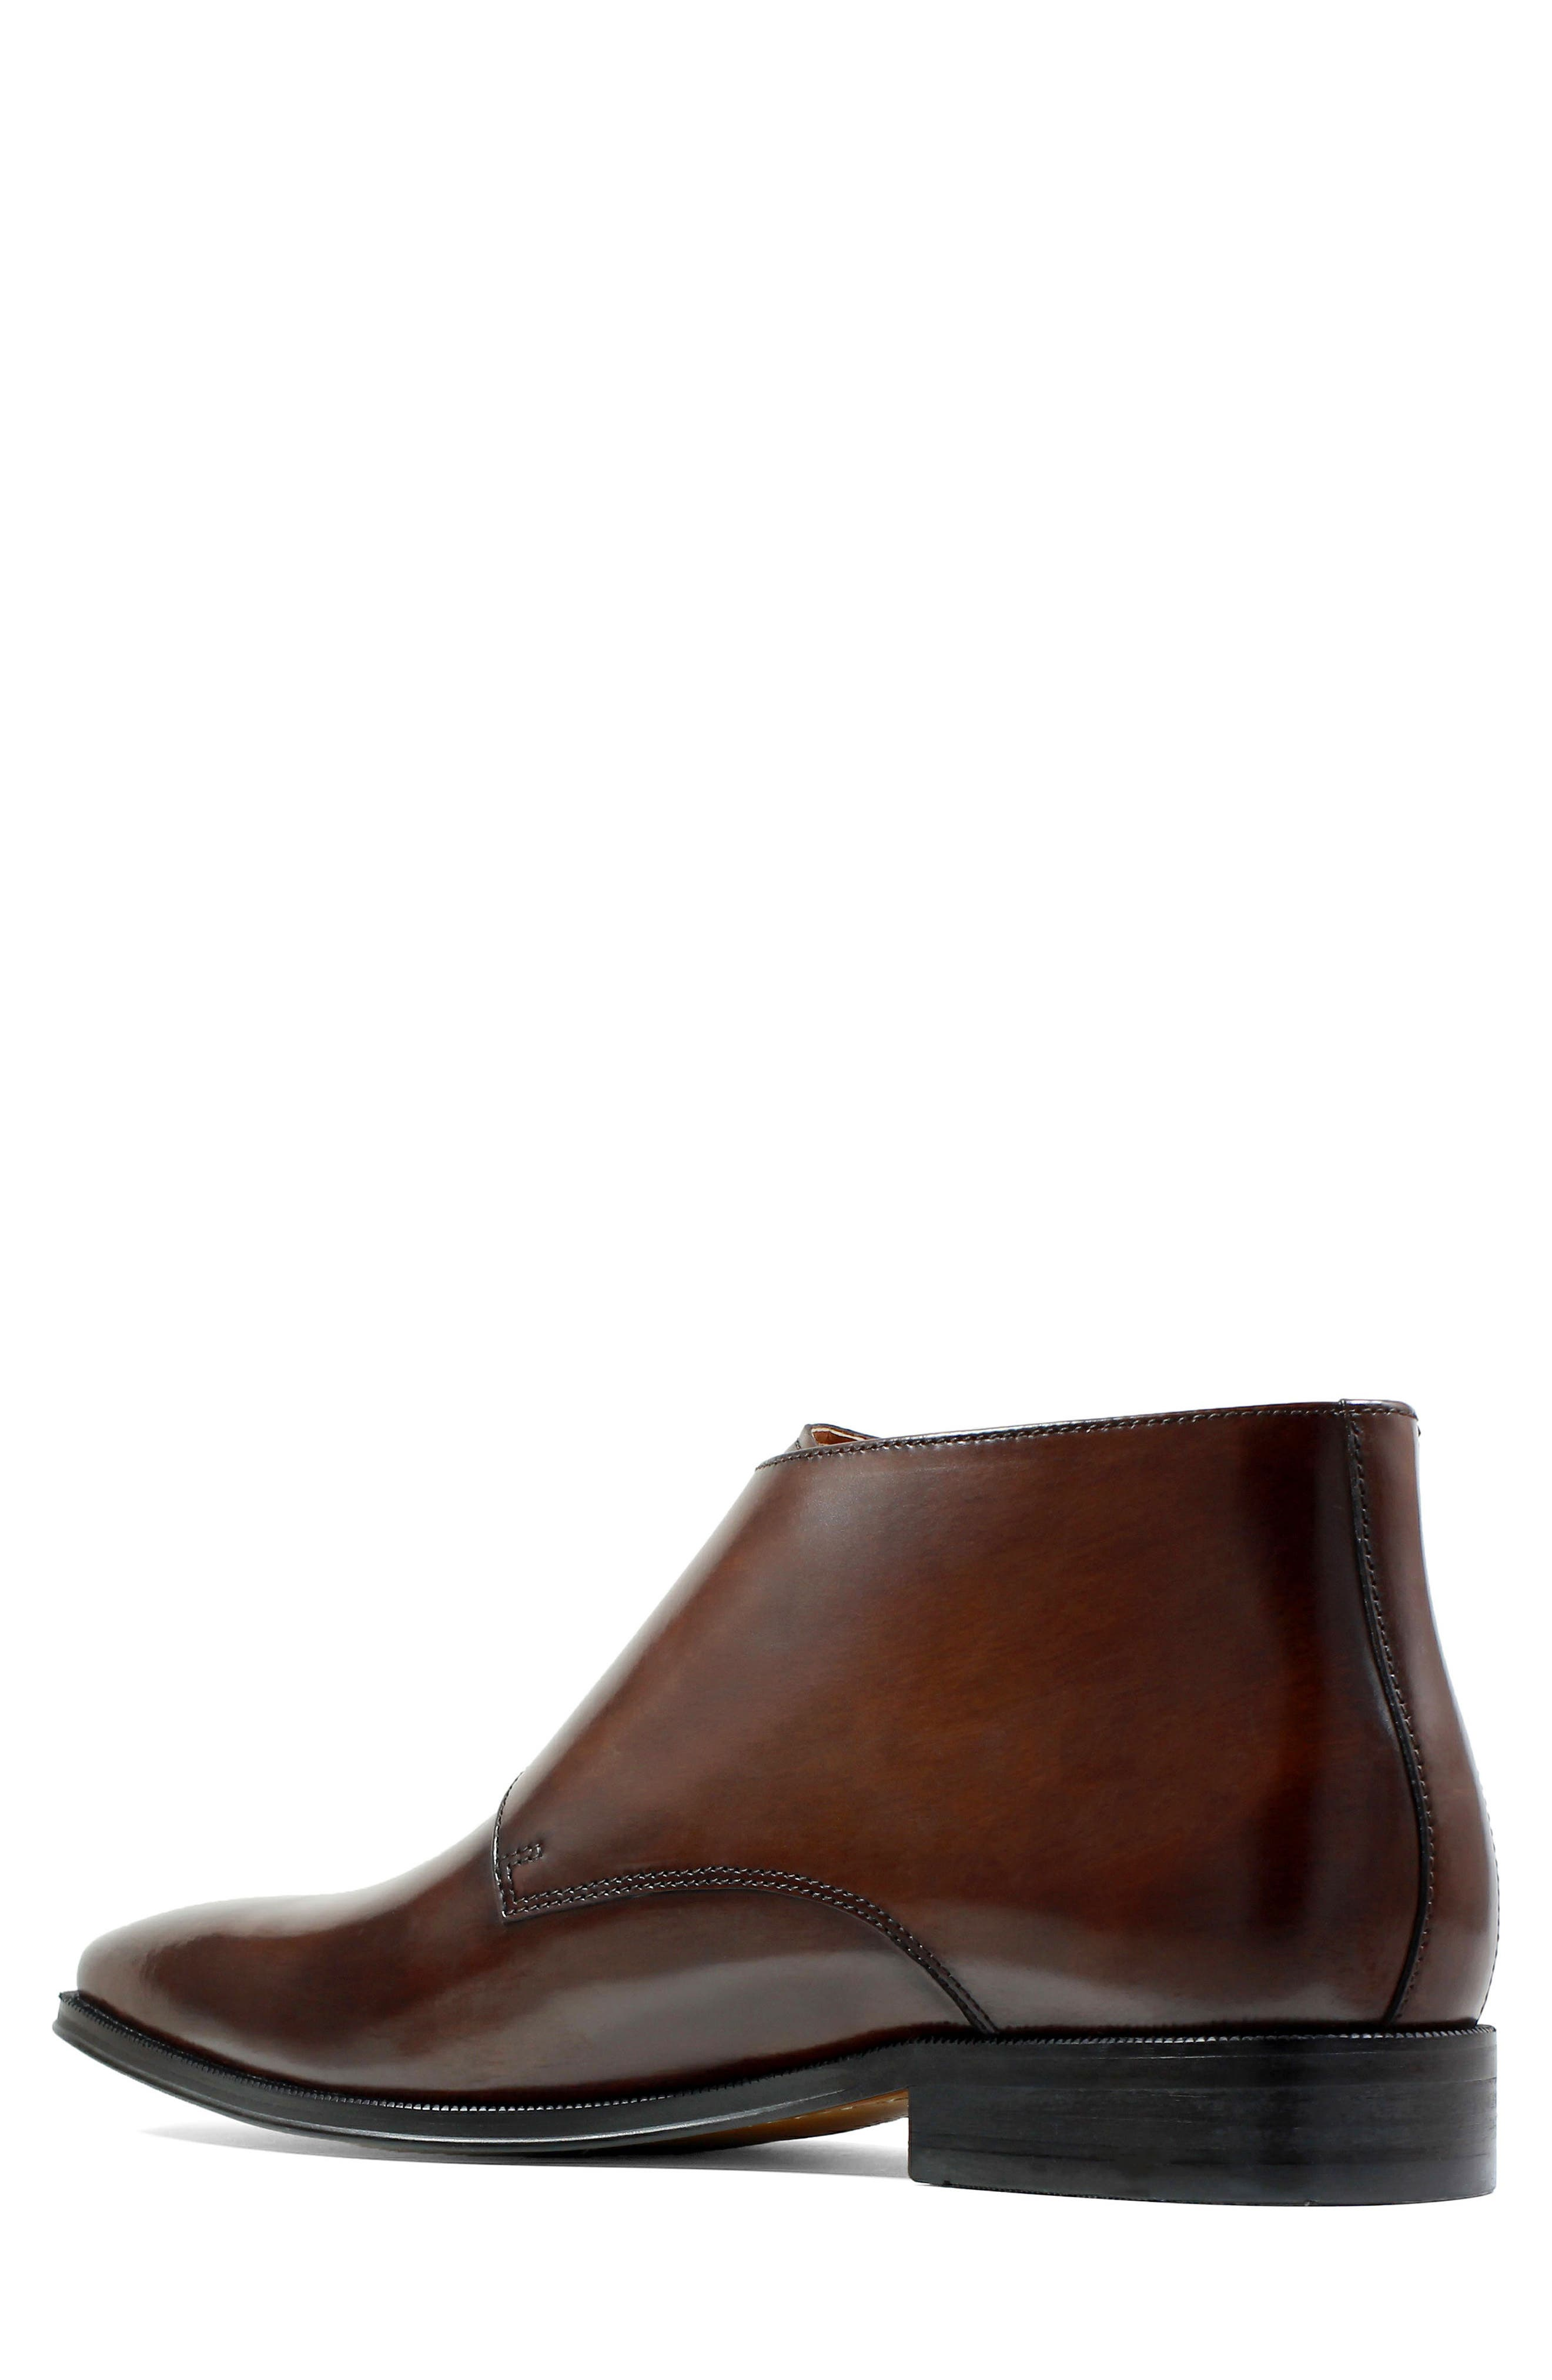 Belfast Double Monk Strap Boot,                             Alternate thumbnail 4, color,